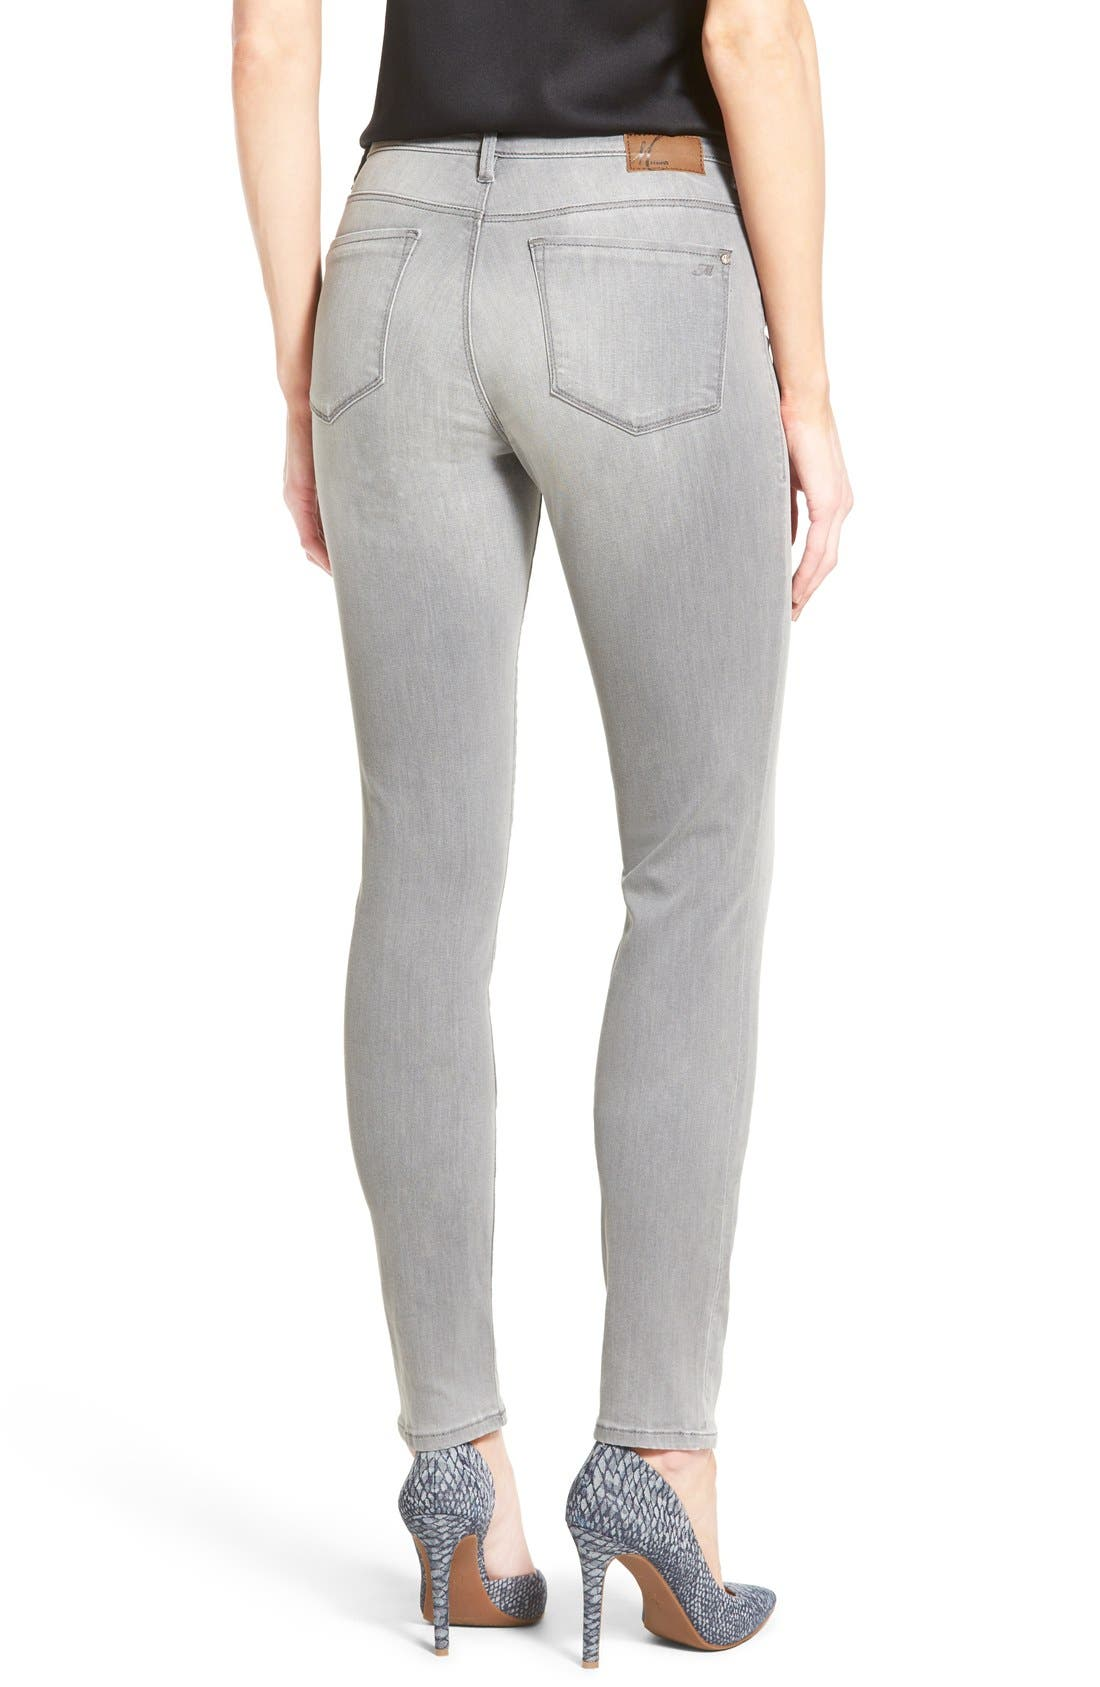 Alternate Image 2  - Mavi Jeans 'Alissa' Stretch Skinny Jeans (Light Grey Tribeca) (Petite)